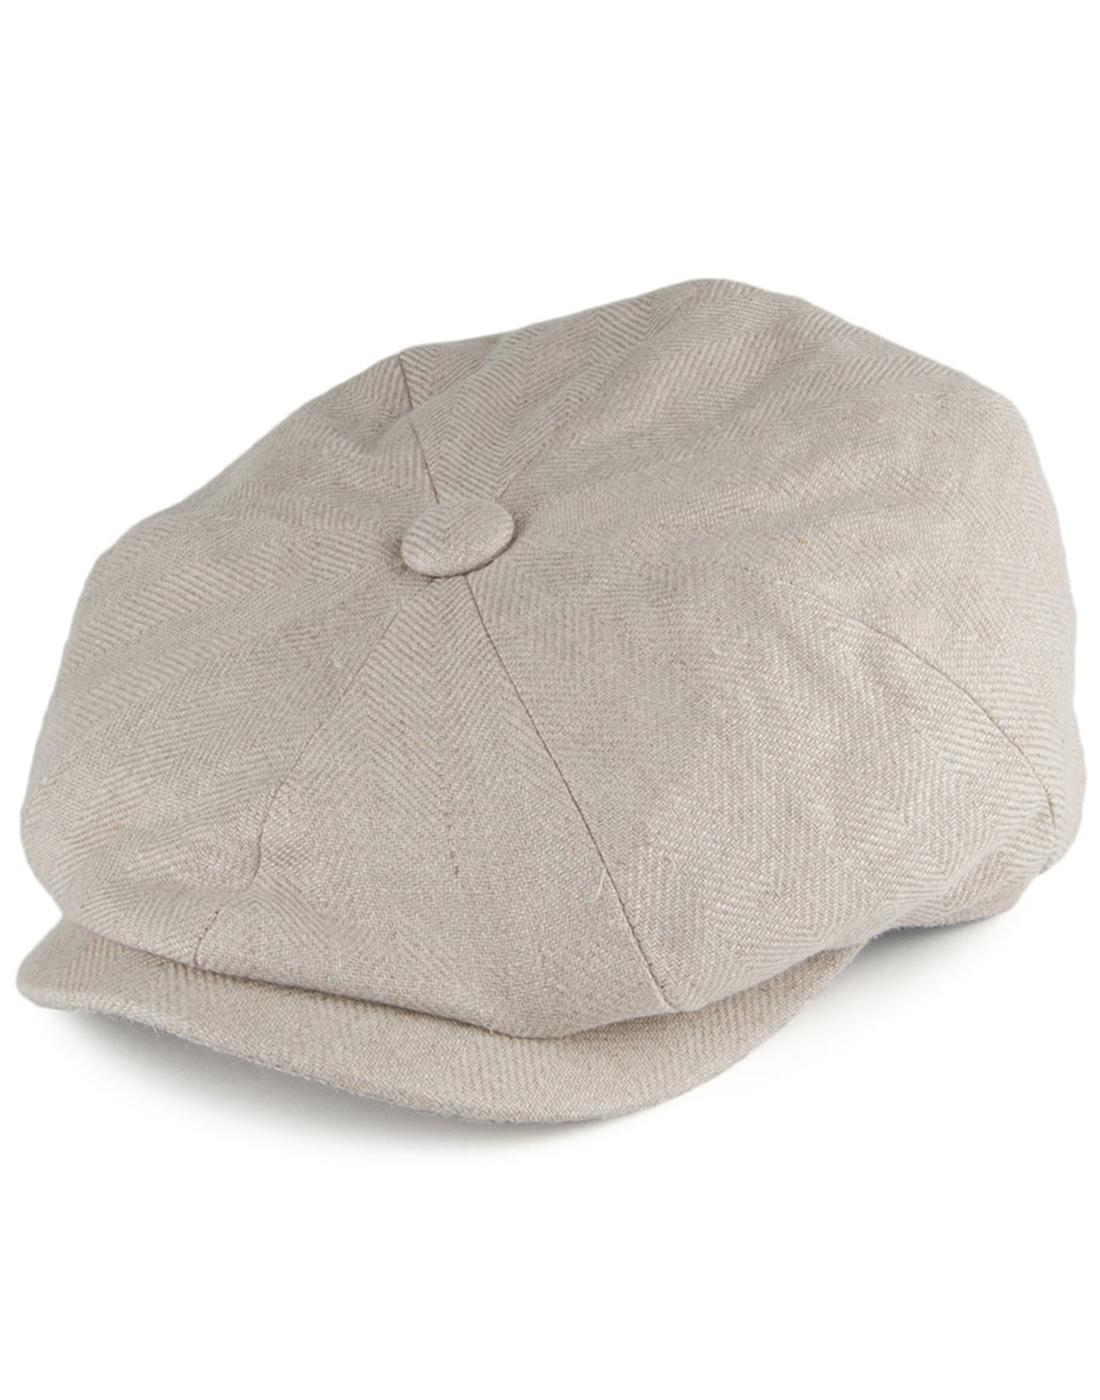 Mayo FAILSWORTH Men's Retro Irish Linen Gatsby Hat